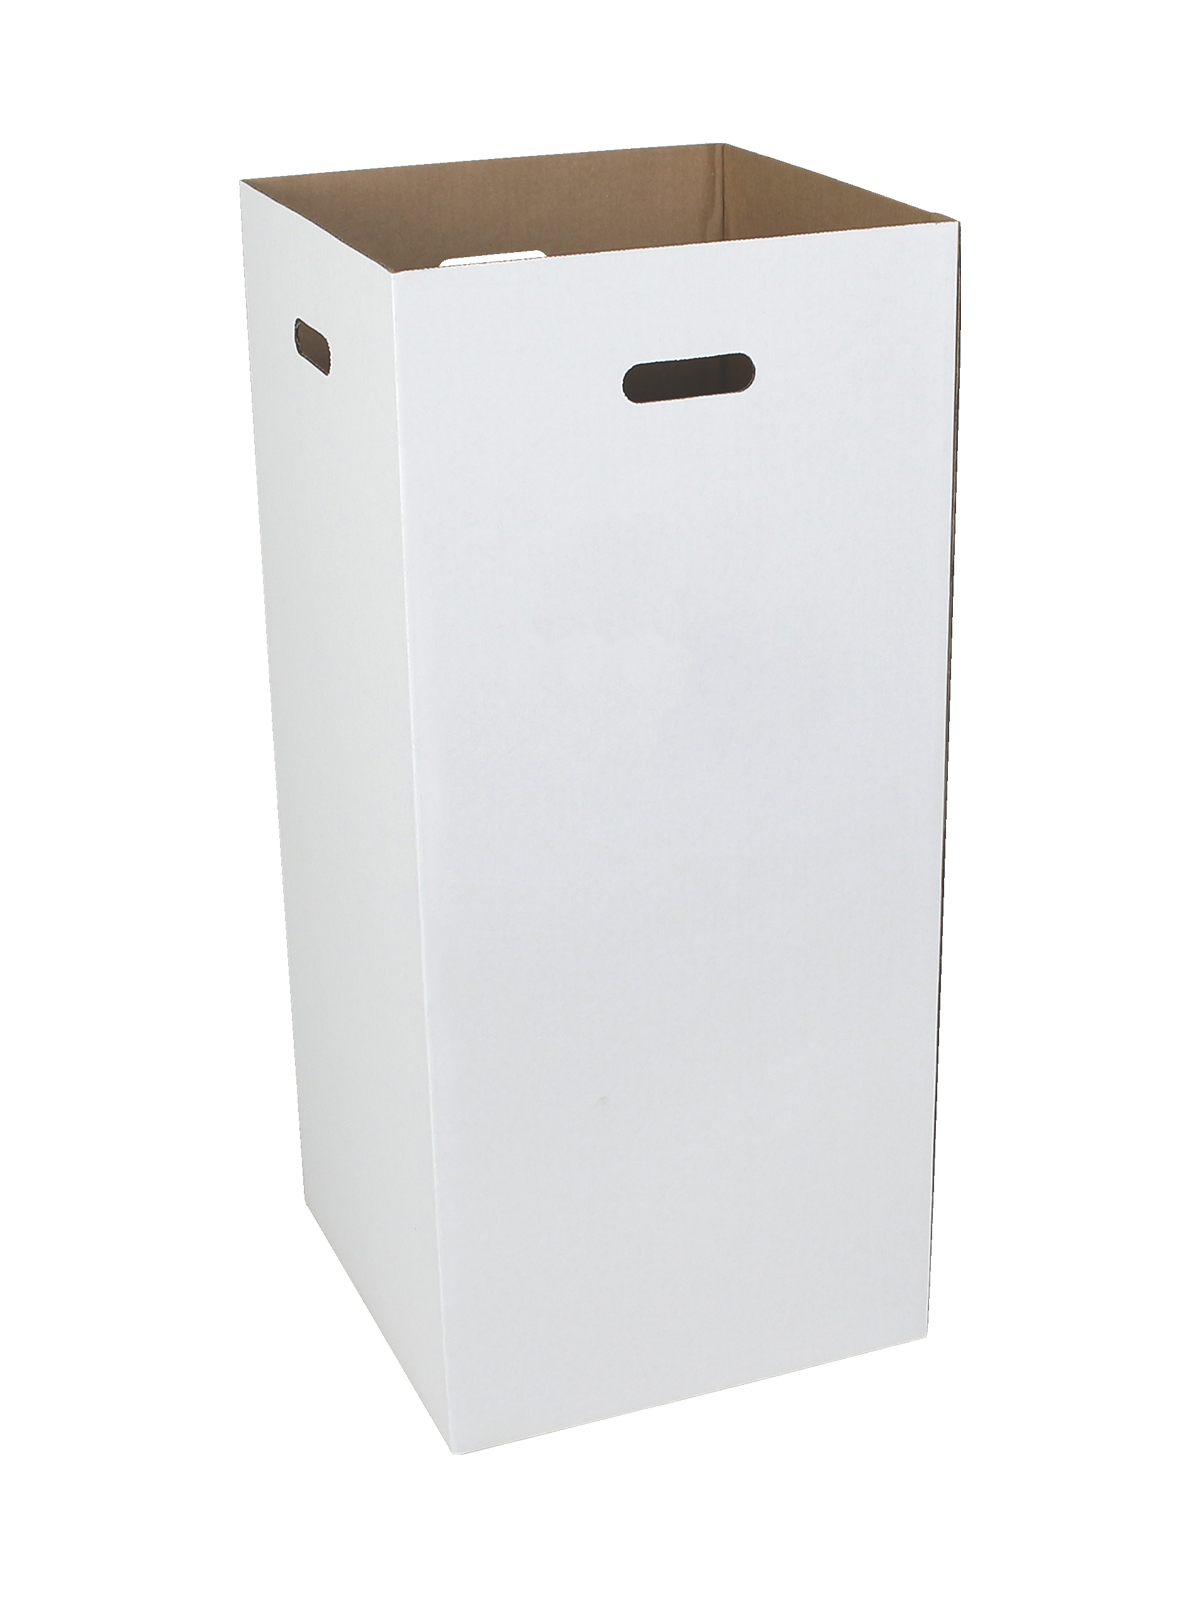 CORRUGATED WASTE BIN - 10 PACK - 28 GALLON - WHITE